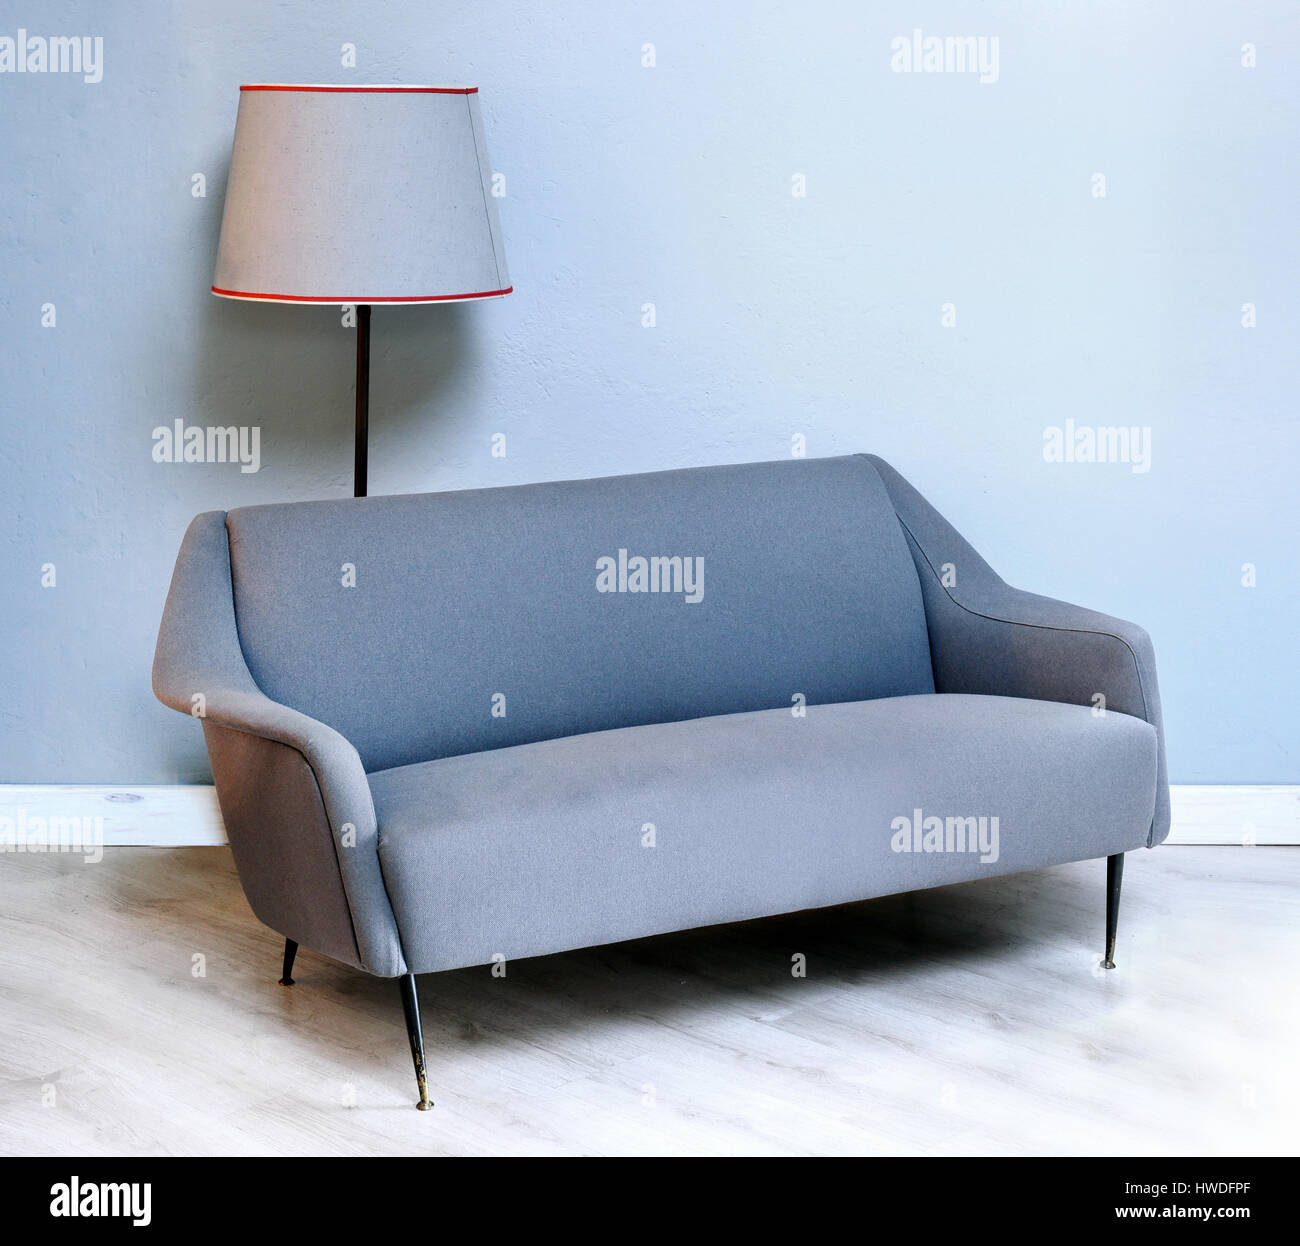 Upholstered Fabric Grey Two Seater Fifties Sofa With Thin Metal Legs With A  Matching Grey Lampshade On A Standing Or Floor Lamp In The Background Agai